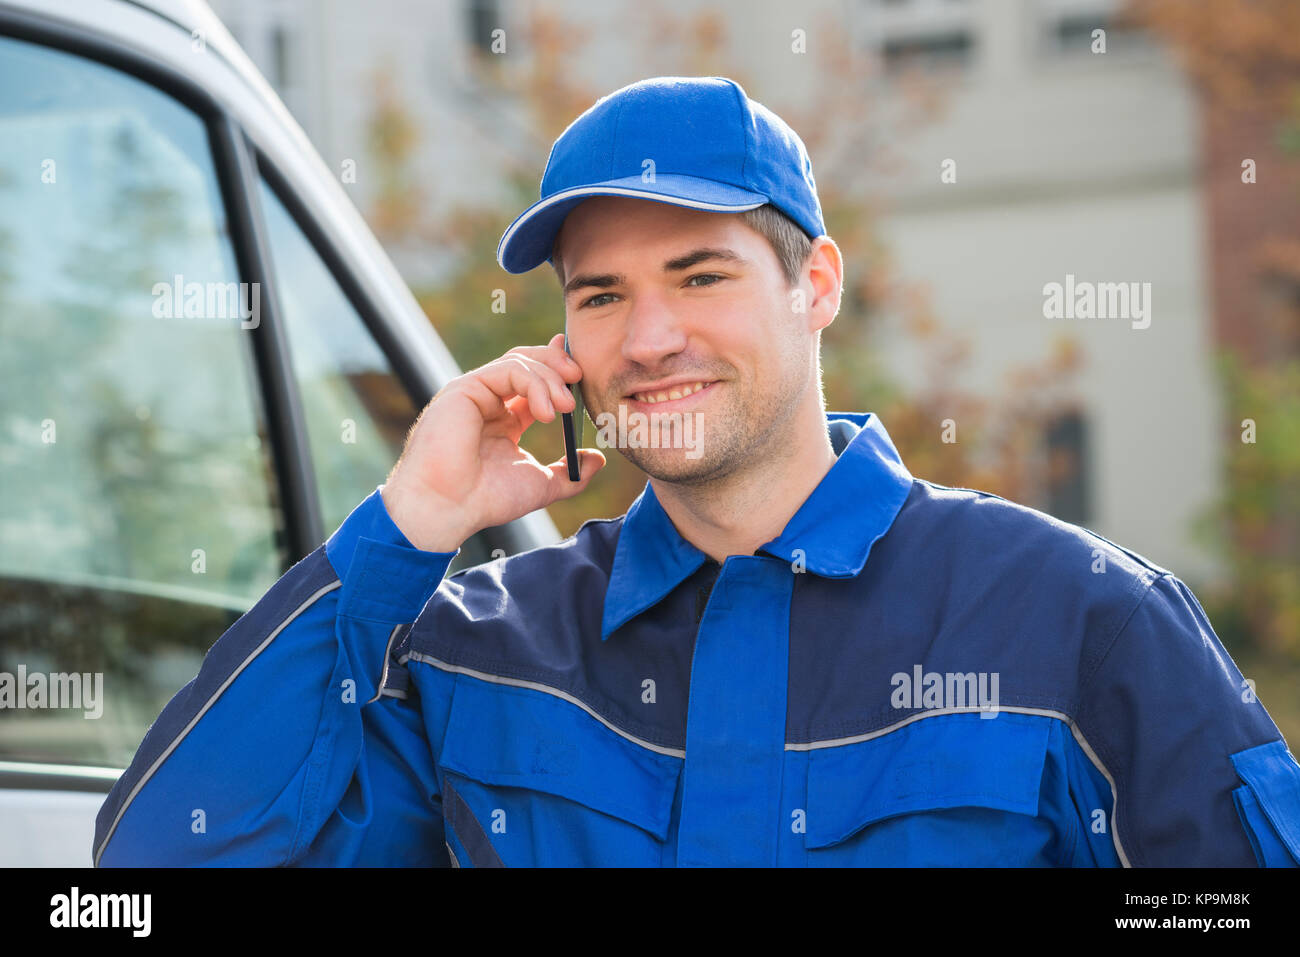 Delivery Man In Uniform Using Mobile Phone - Stock Image